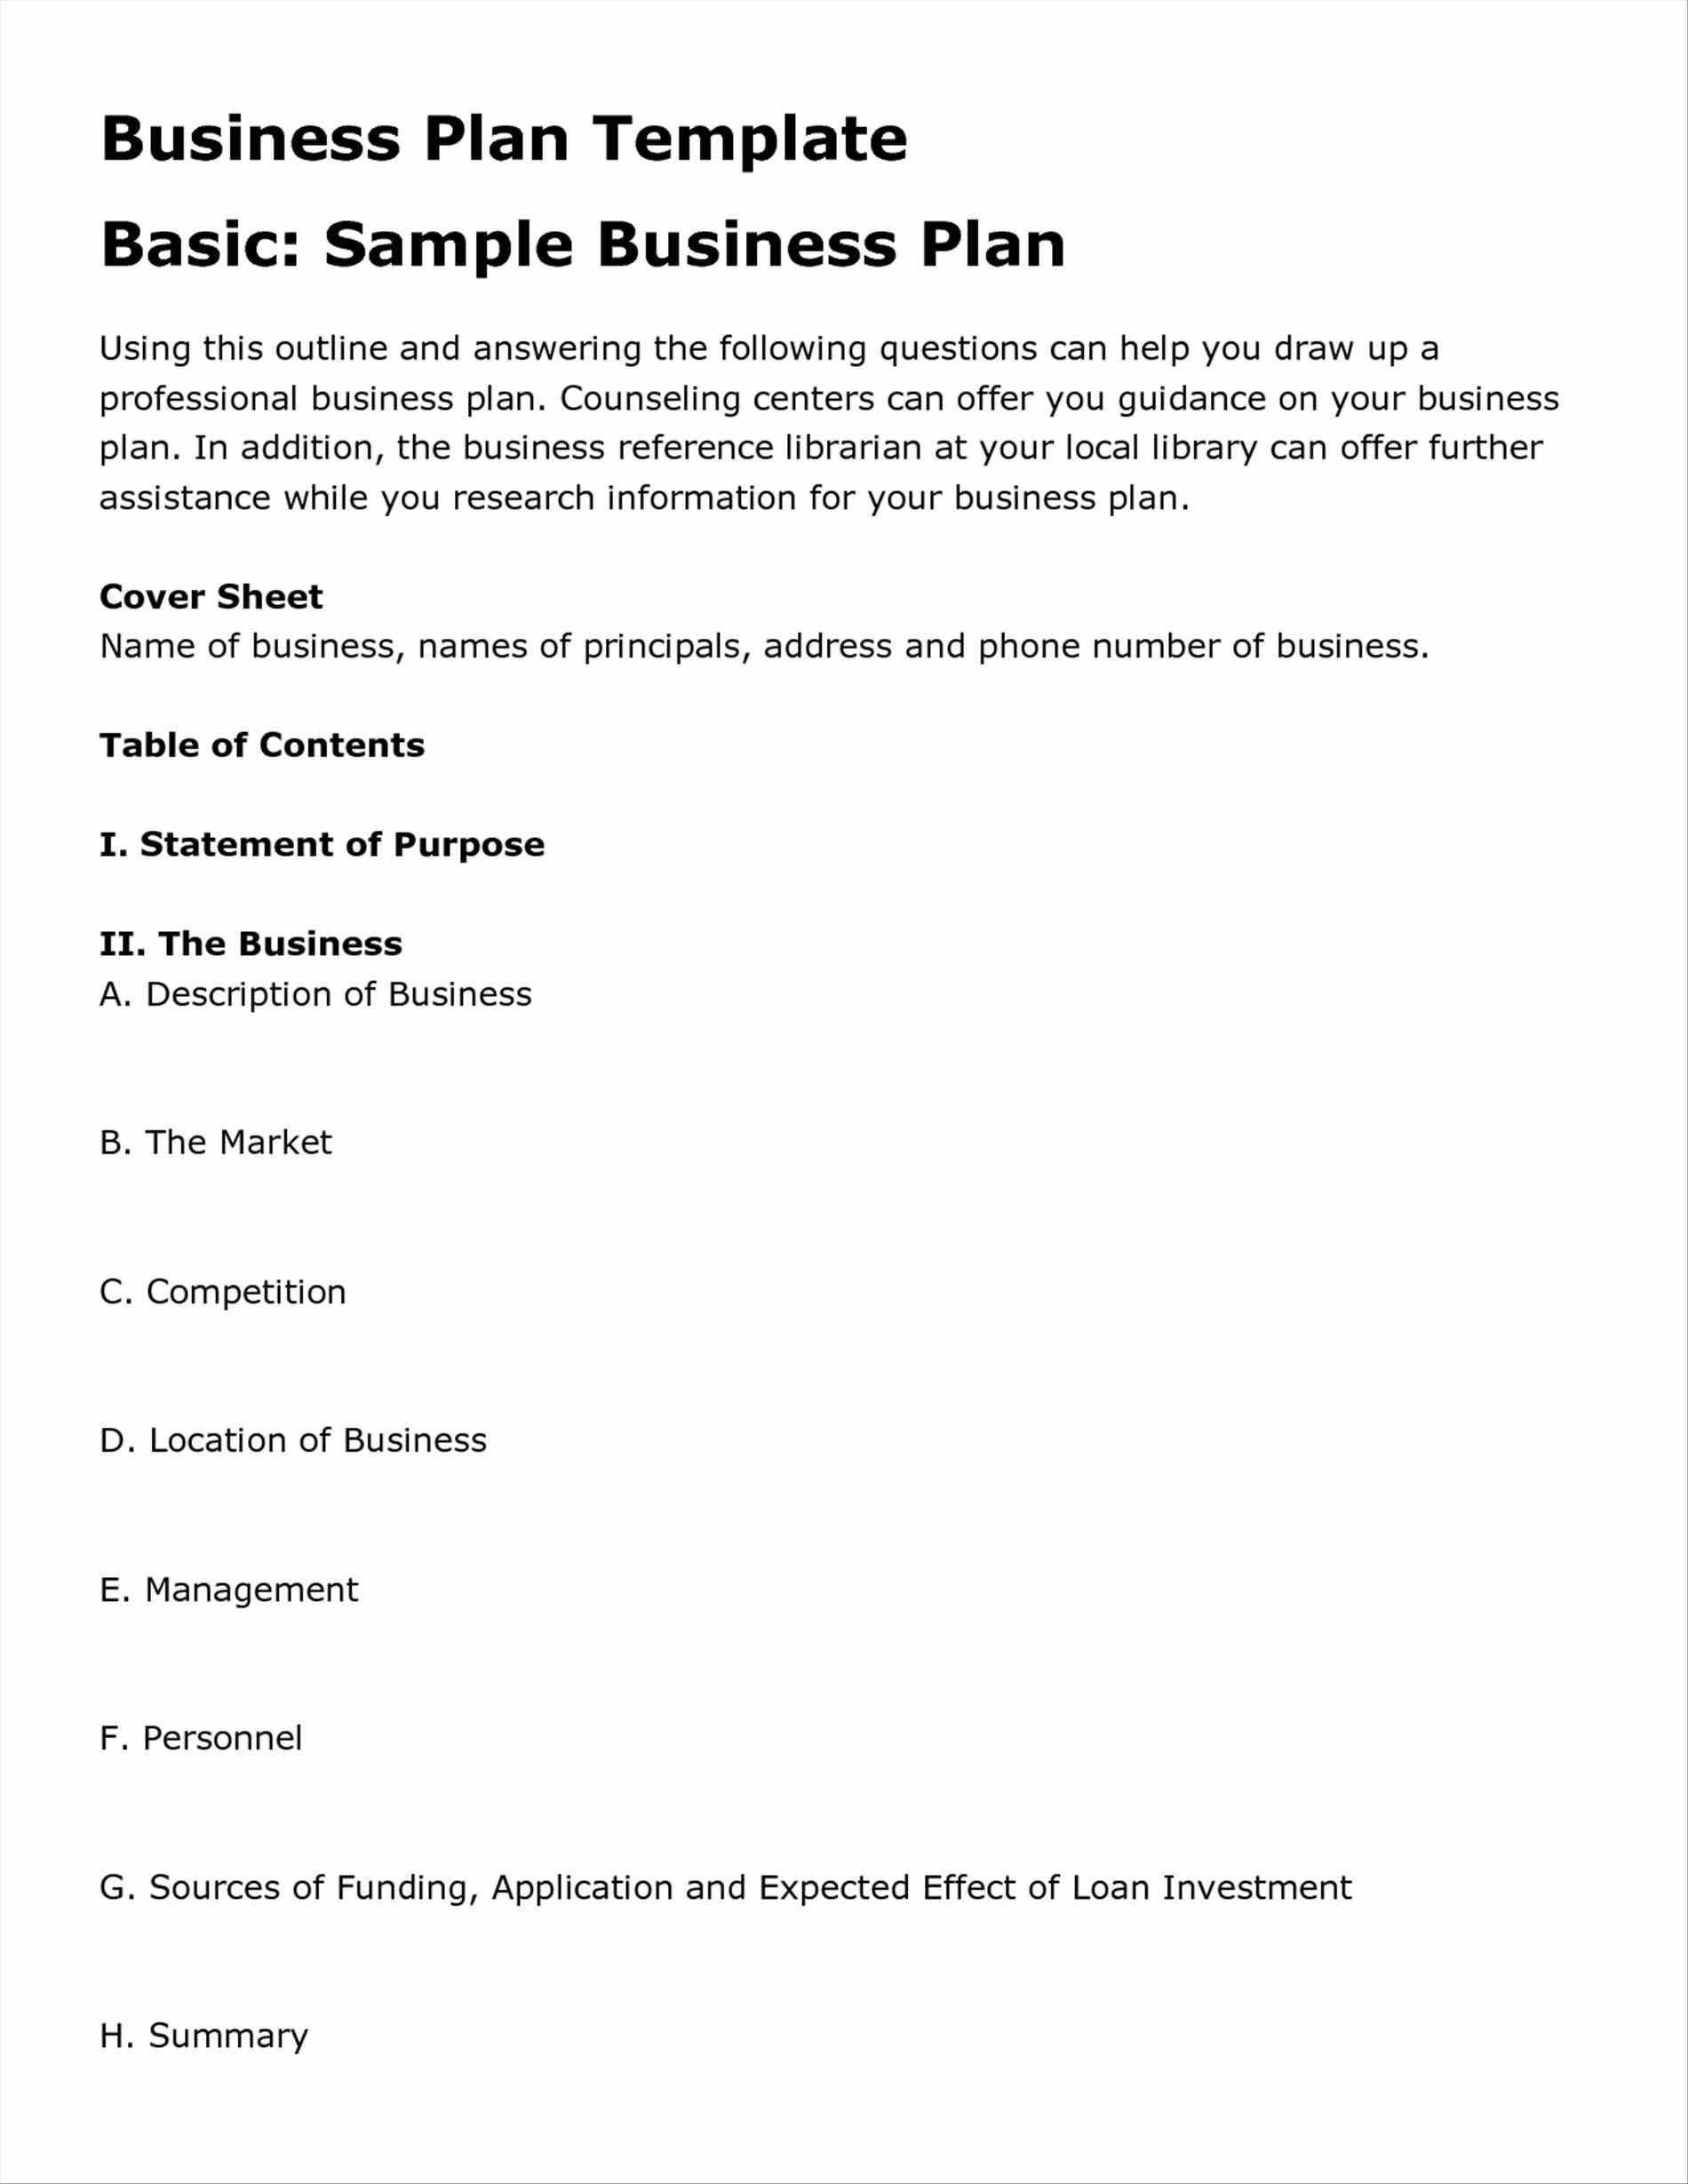 Clothing Line Business Plan New Free Sample Business Plan Outline Salodfinedtraveler In 2020 Business Plan Template Word Business Plan Outline Business Plan Example Clothing line business plan template